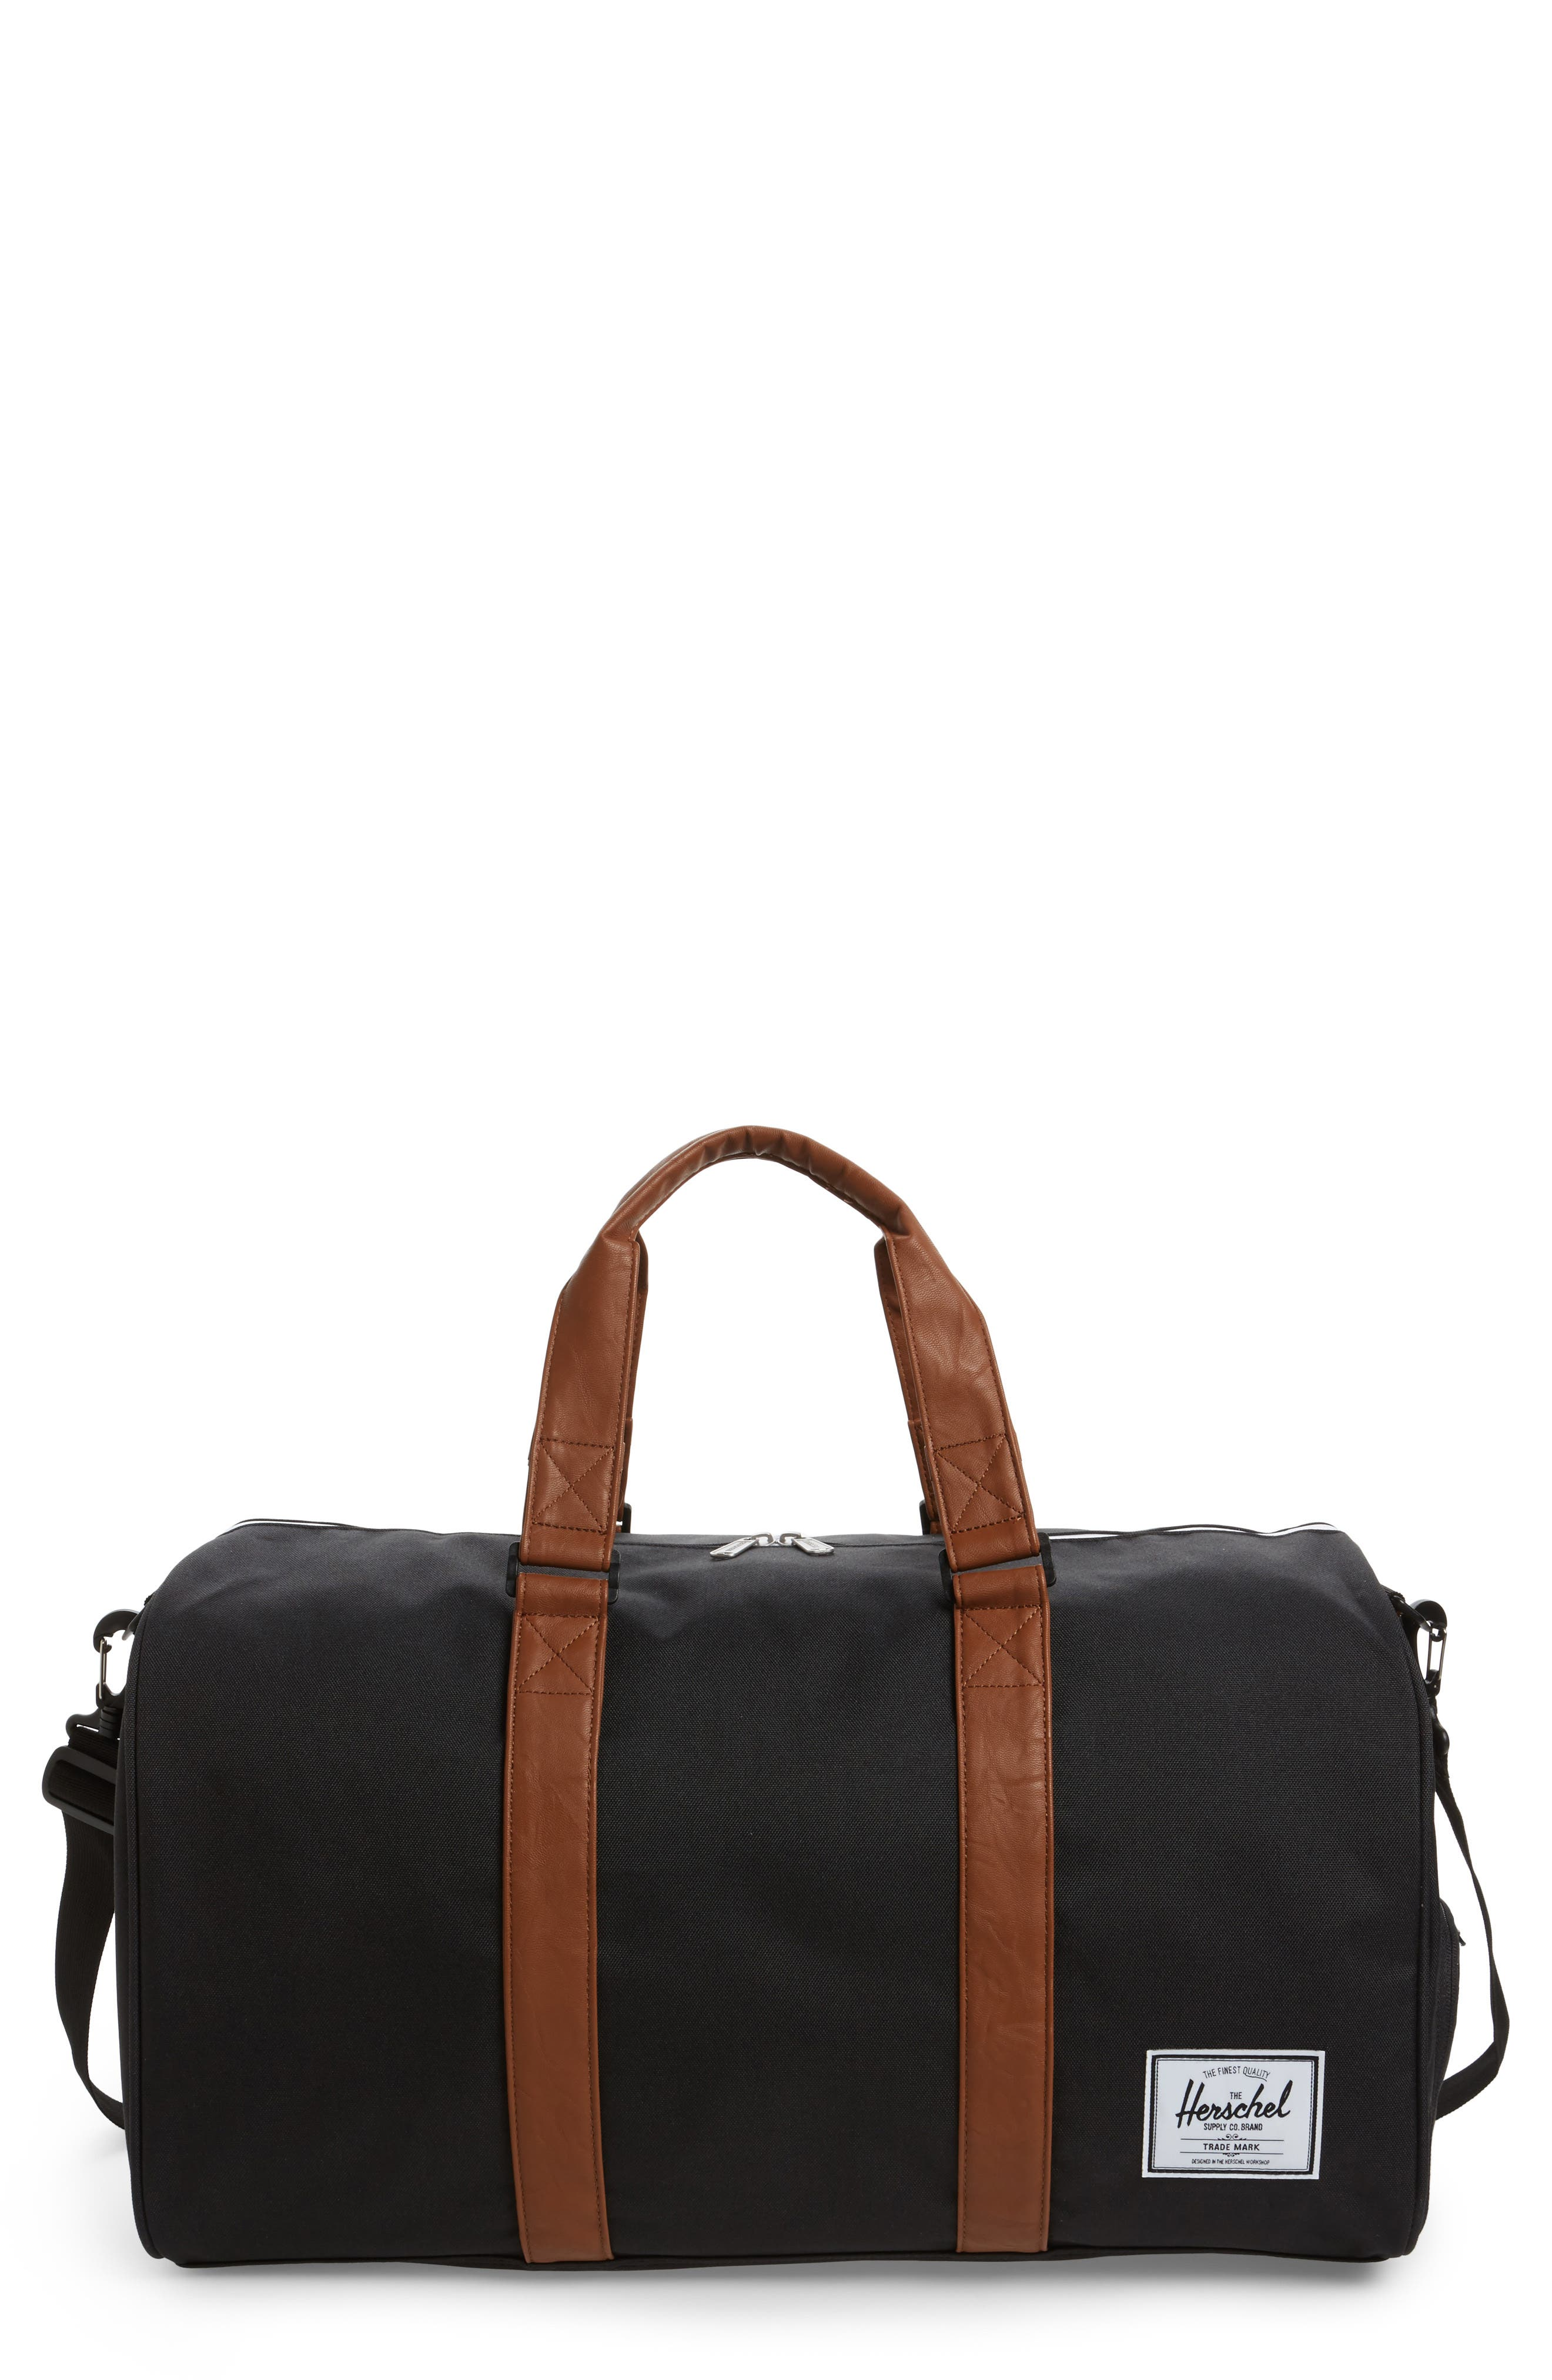 'Novel' Duffel Bag,                             Main thumbnail 1, color,                             BLACK/ TAN